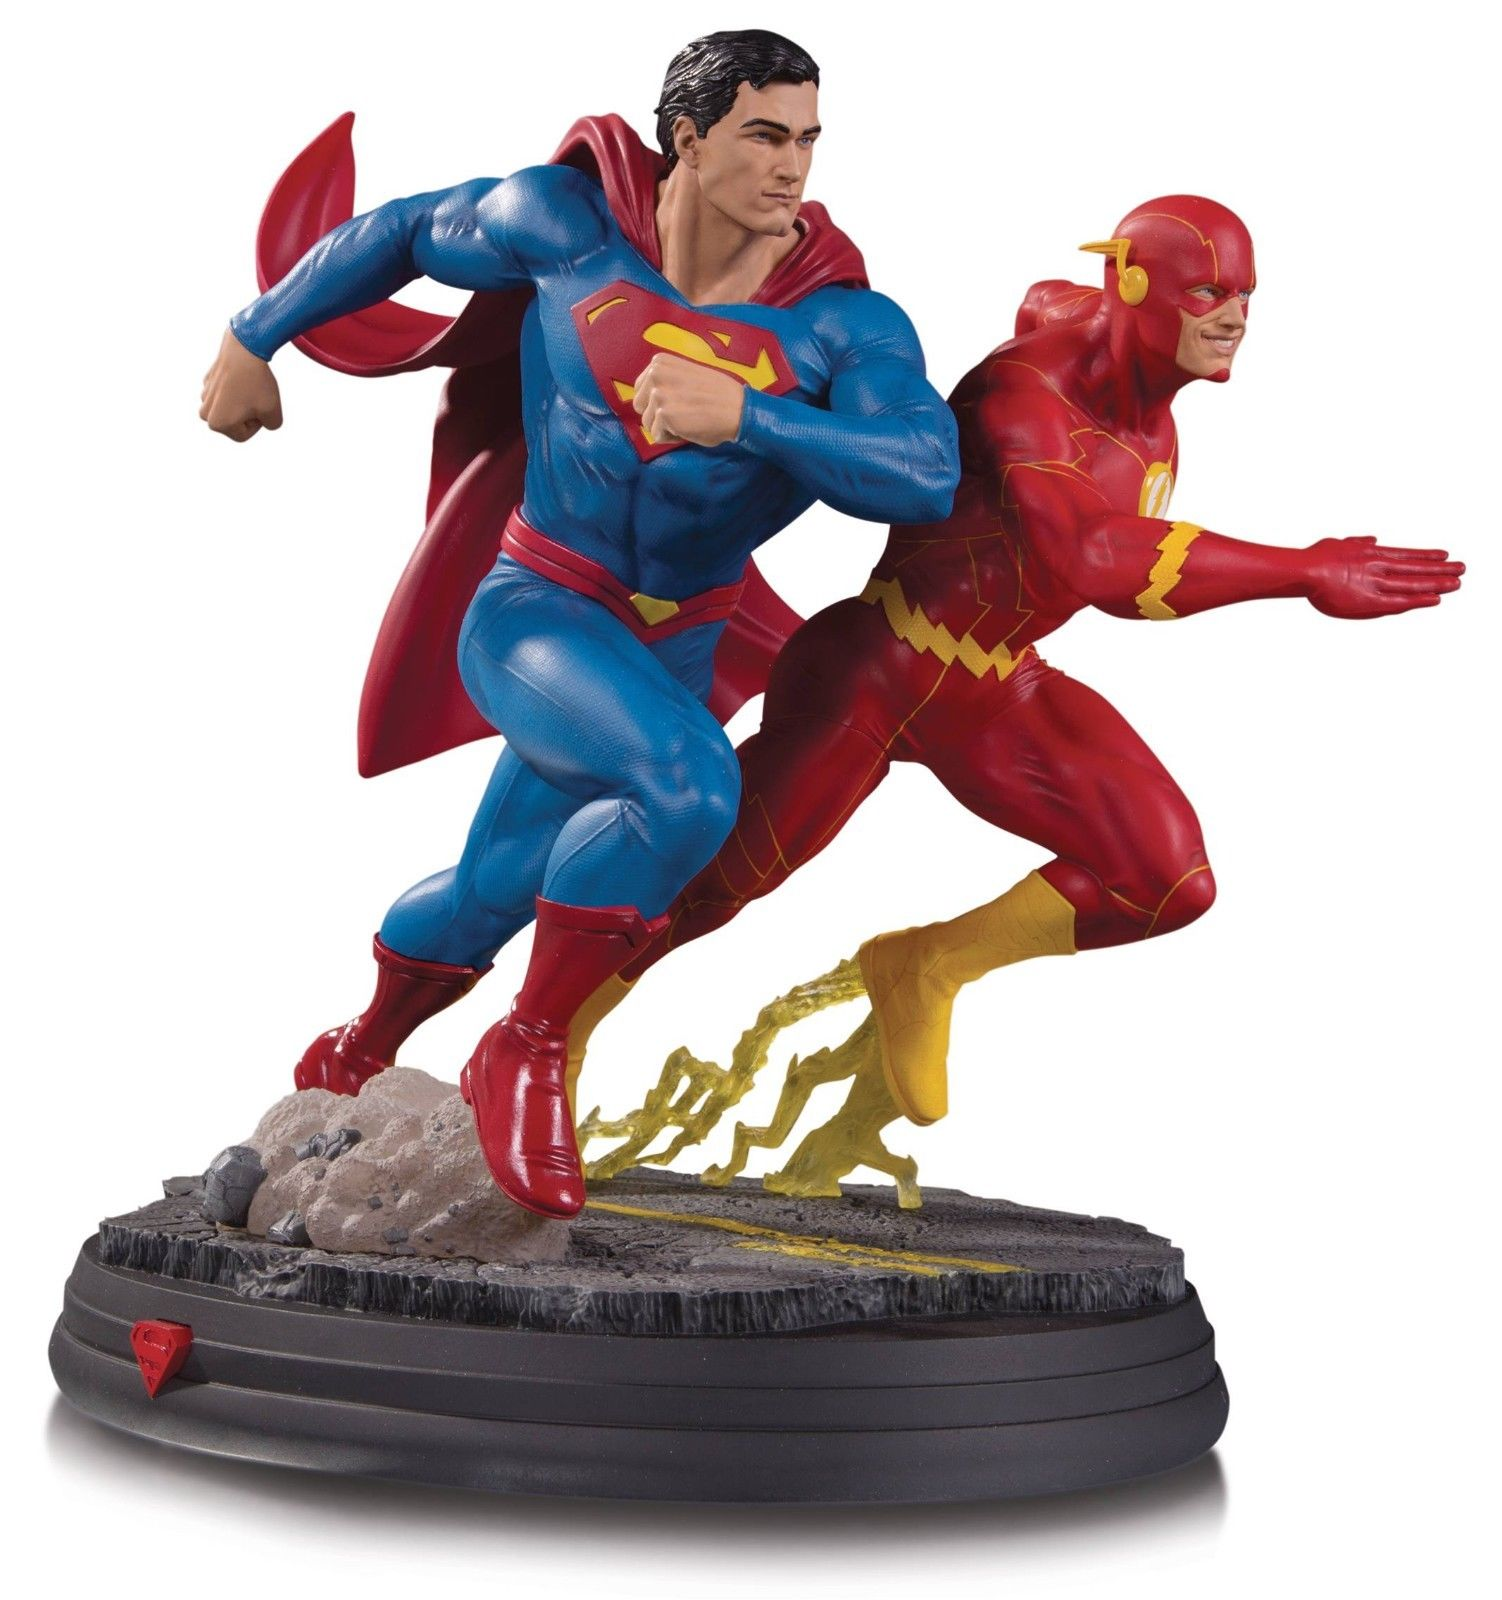 Superman Vs Flash Racing Resin Statue - DC Collectibles DC Gallery